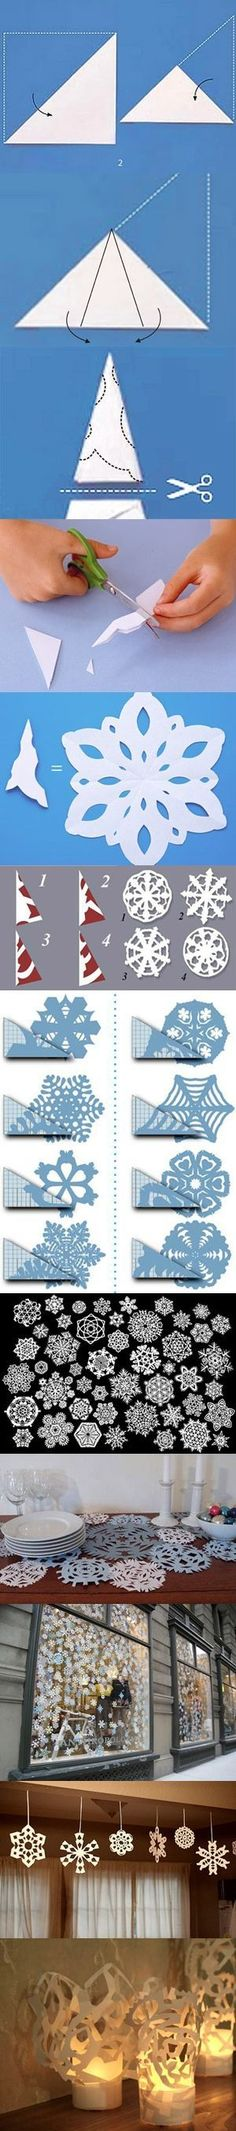 I made these all the time as a kid. Keeping this for the designs so we can do this together in the late fall.: